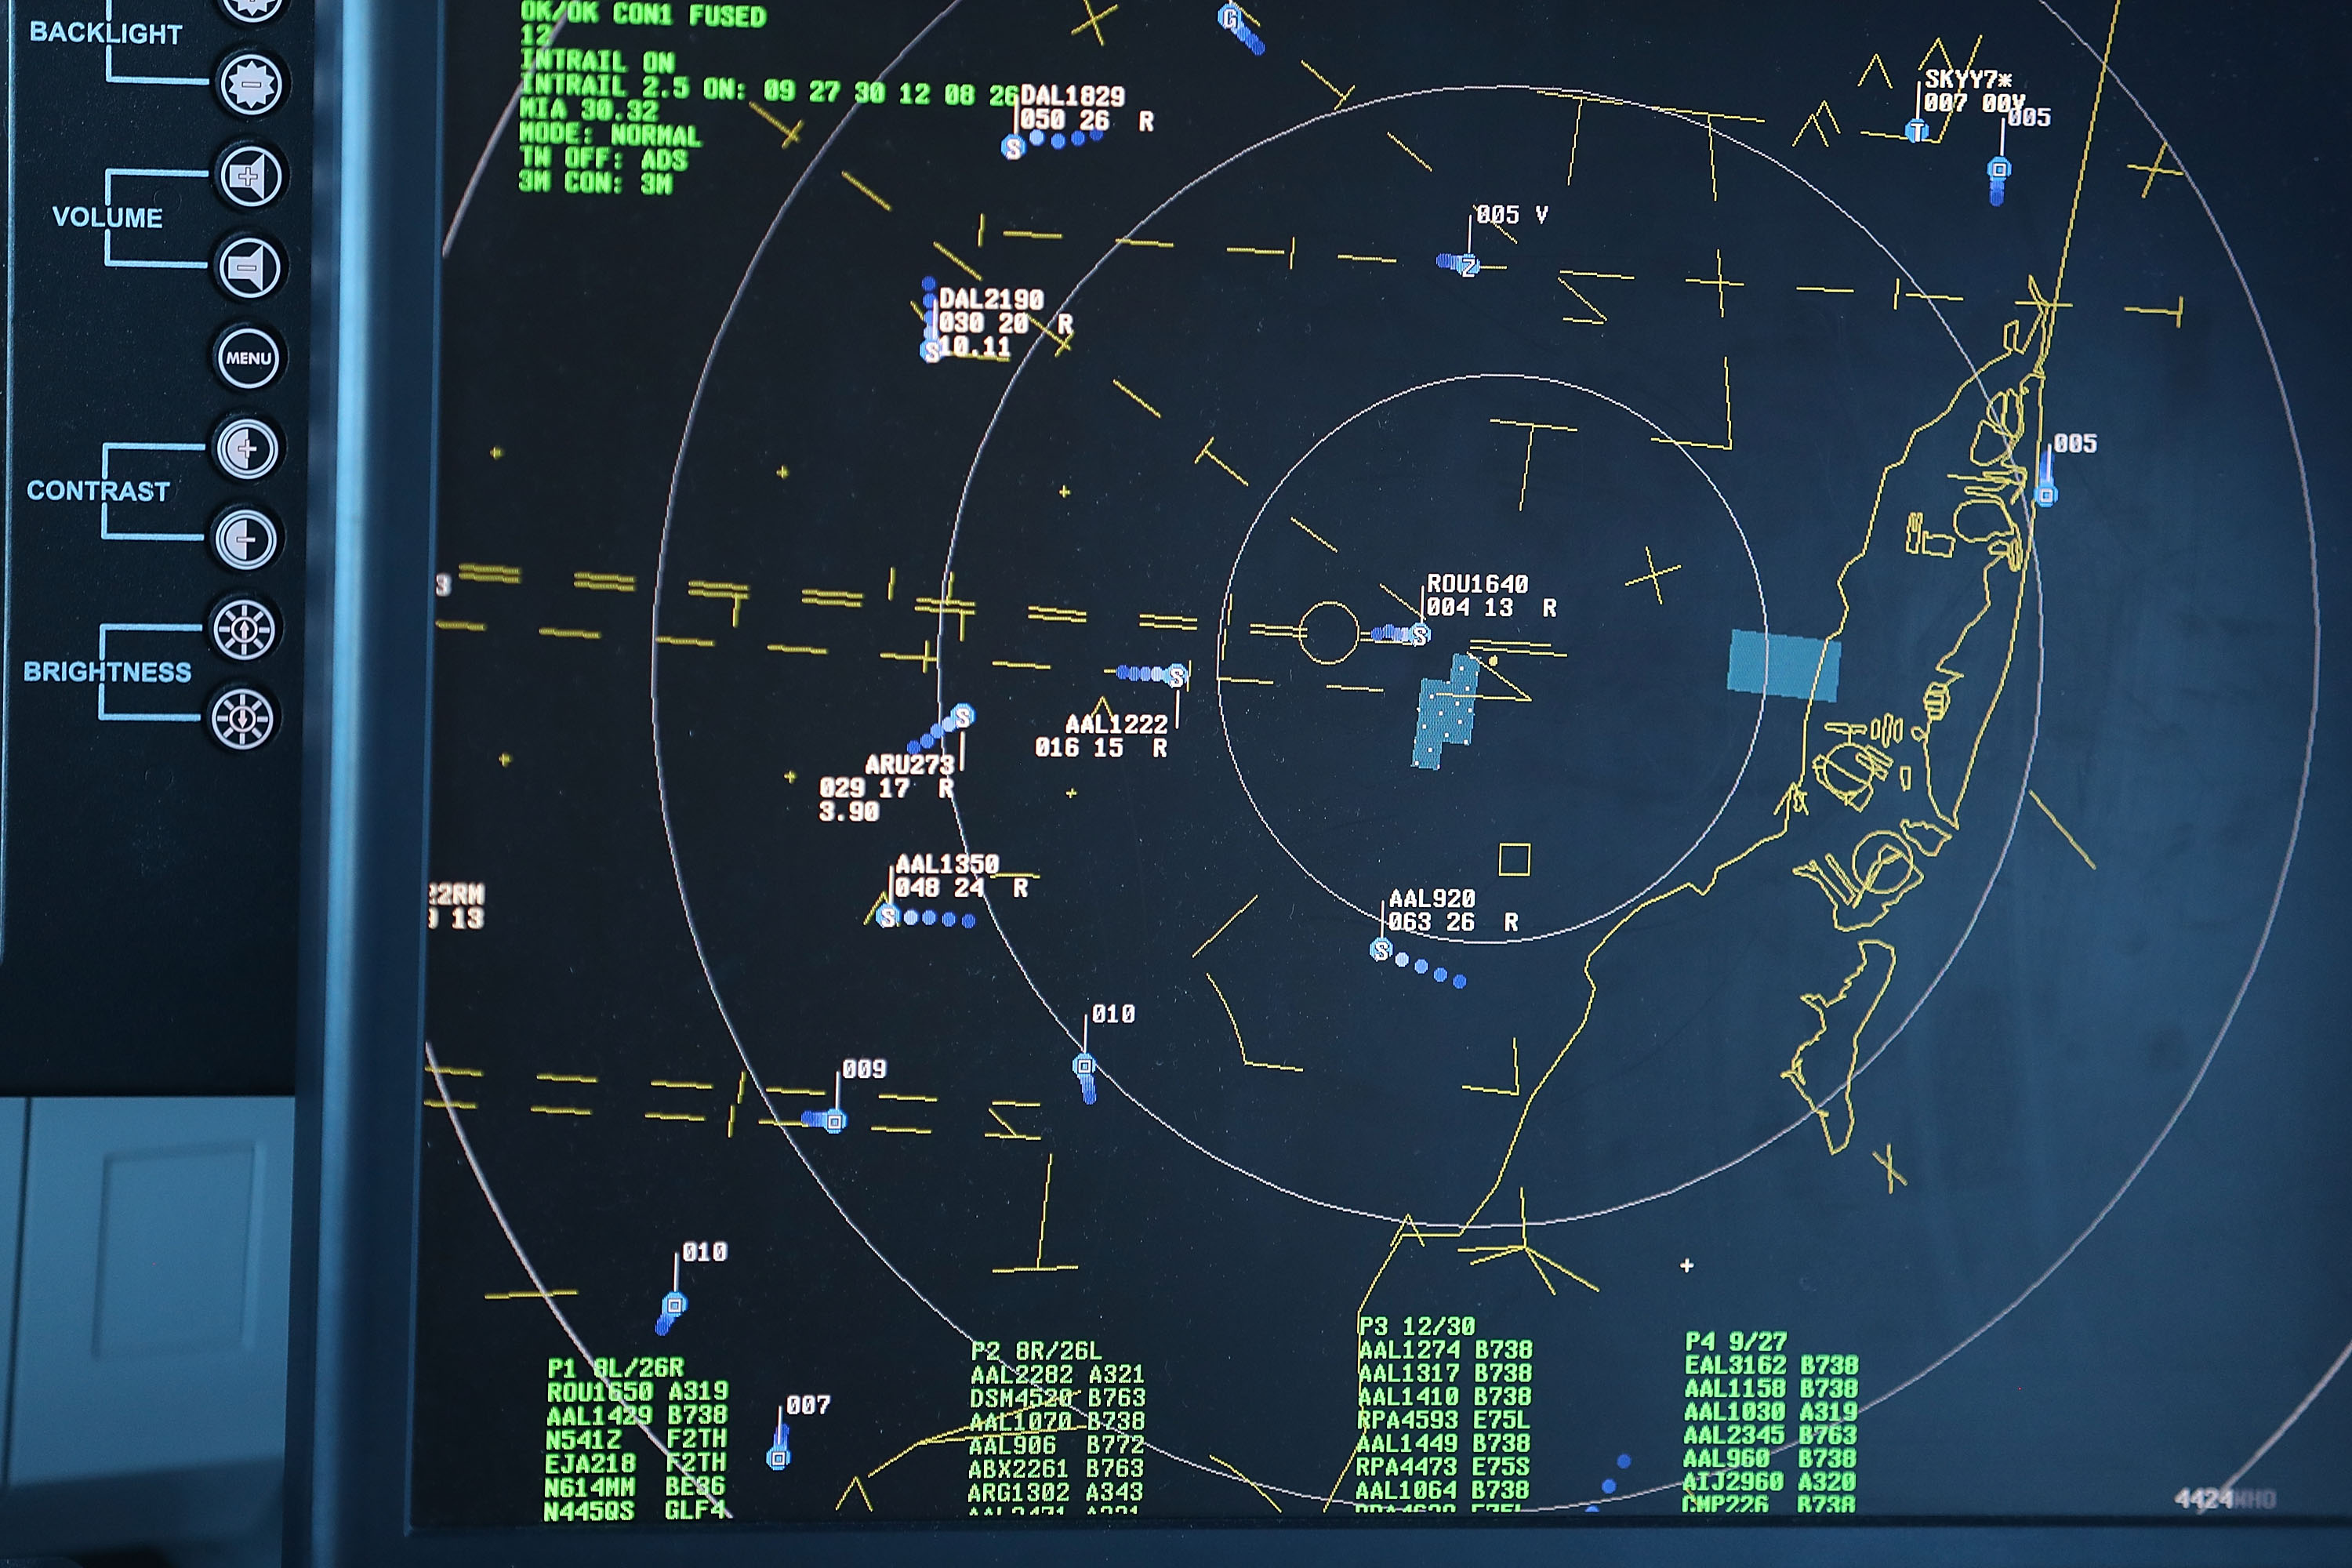 648801542-new-communications-system-demonstrated-at-miami-intl-airport.jpg